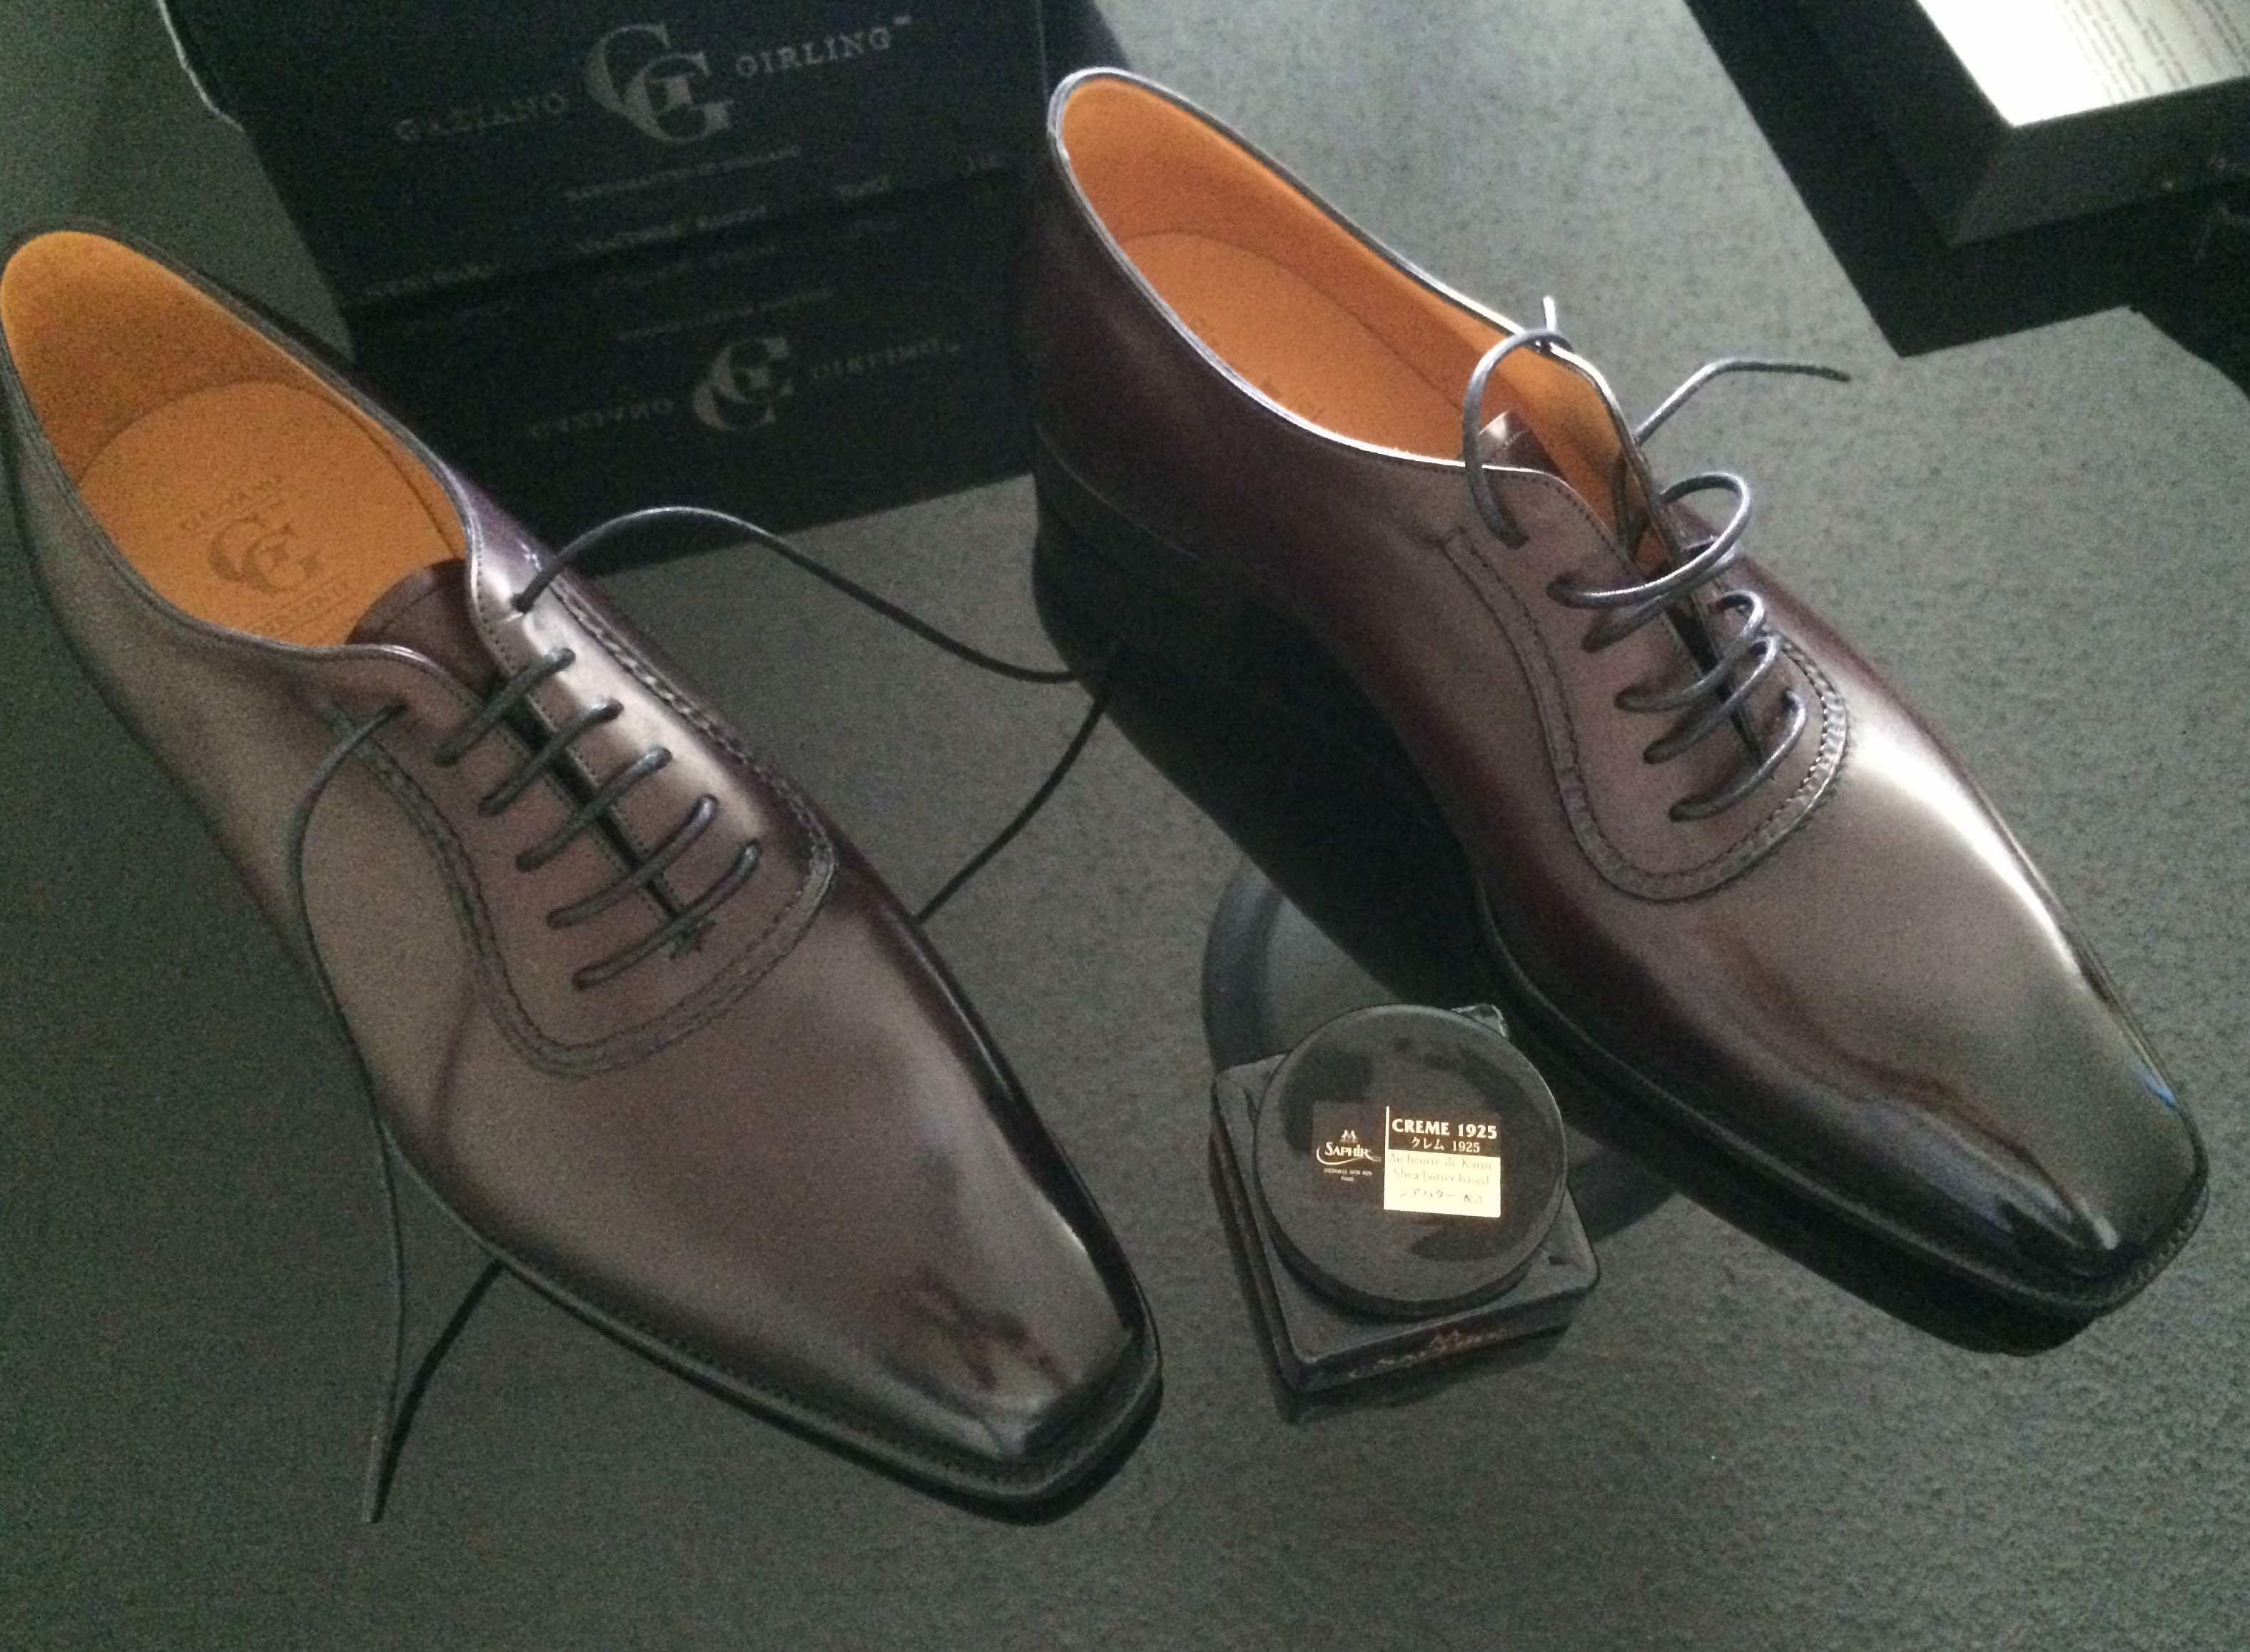 GG Westbury - with Saphir Navy cream